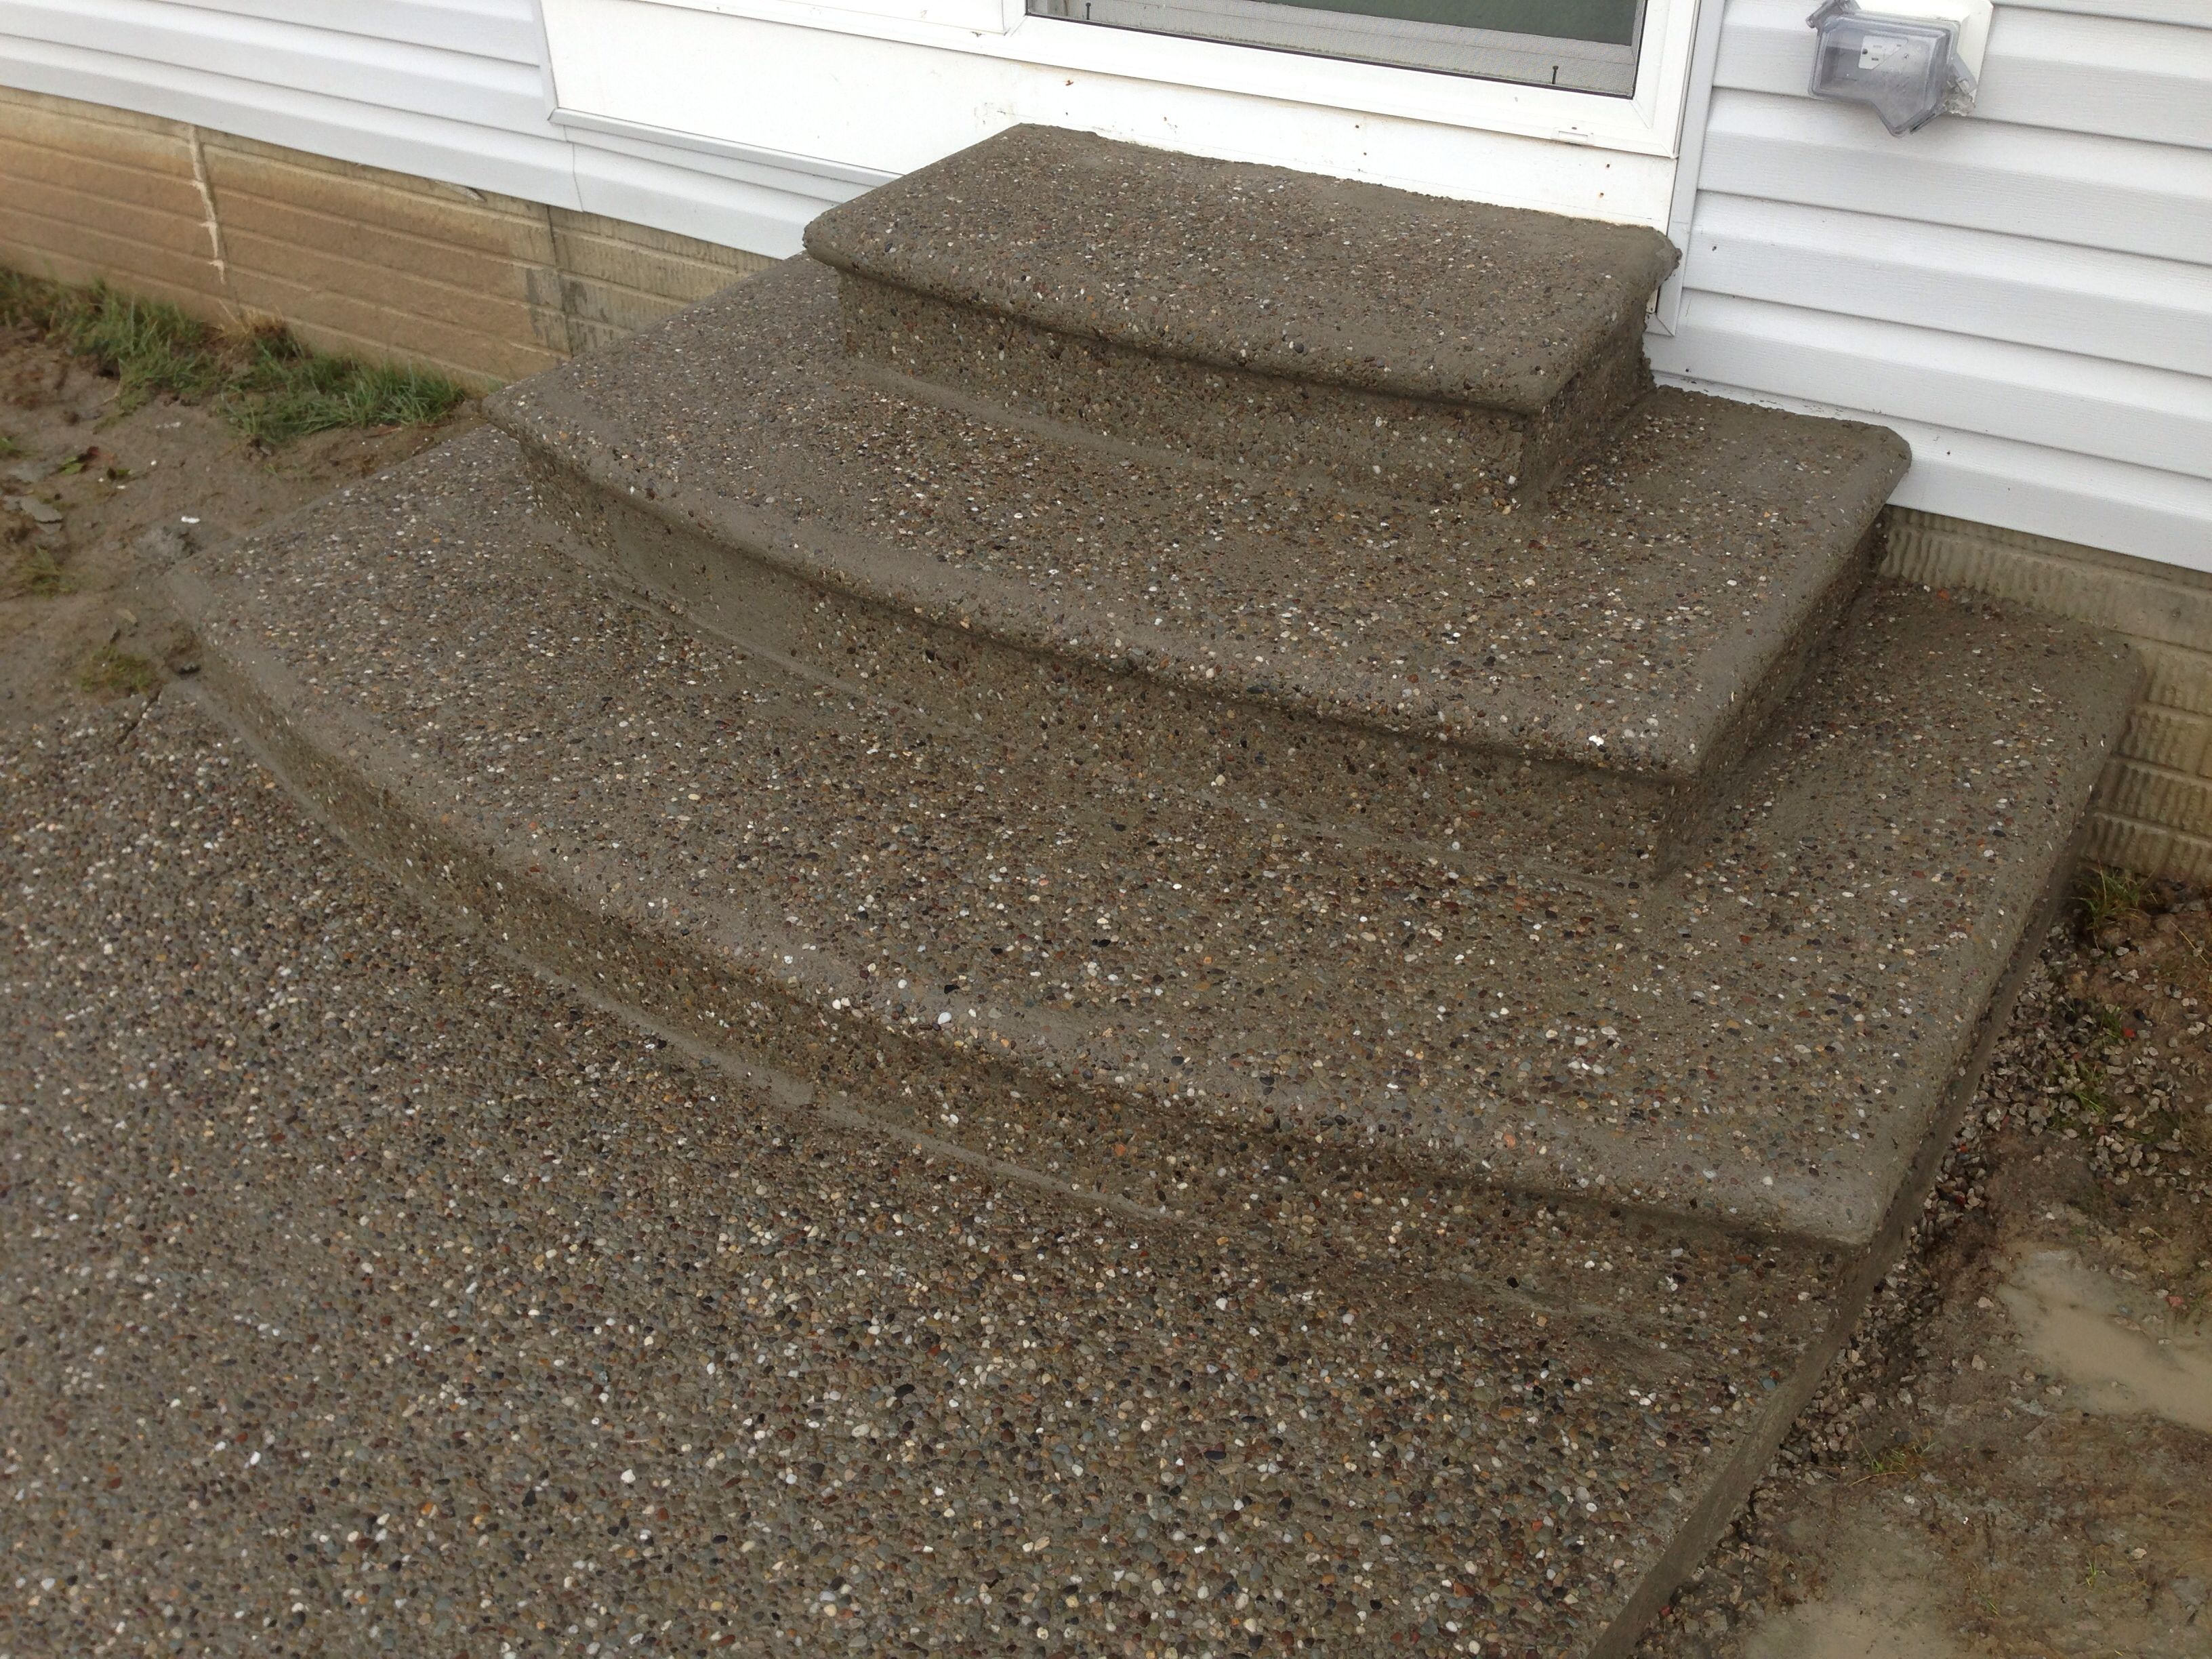 Exposed Aggregate Decorative Concrete Steps With Bull Nose